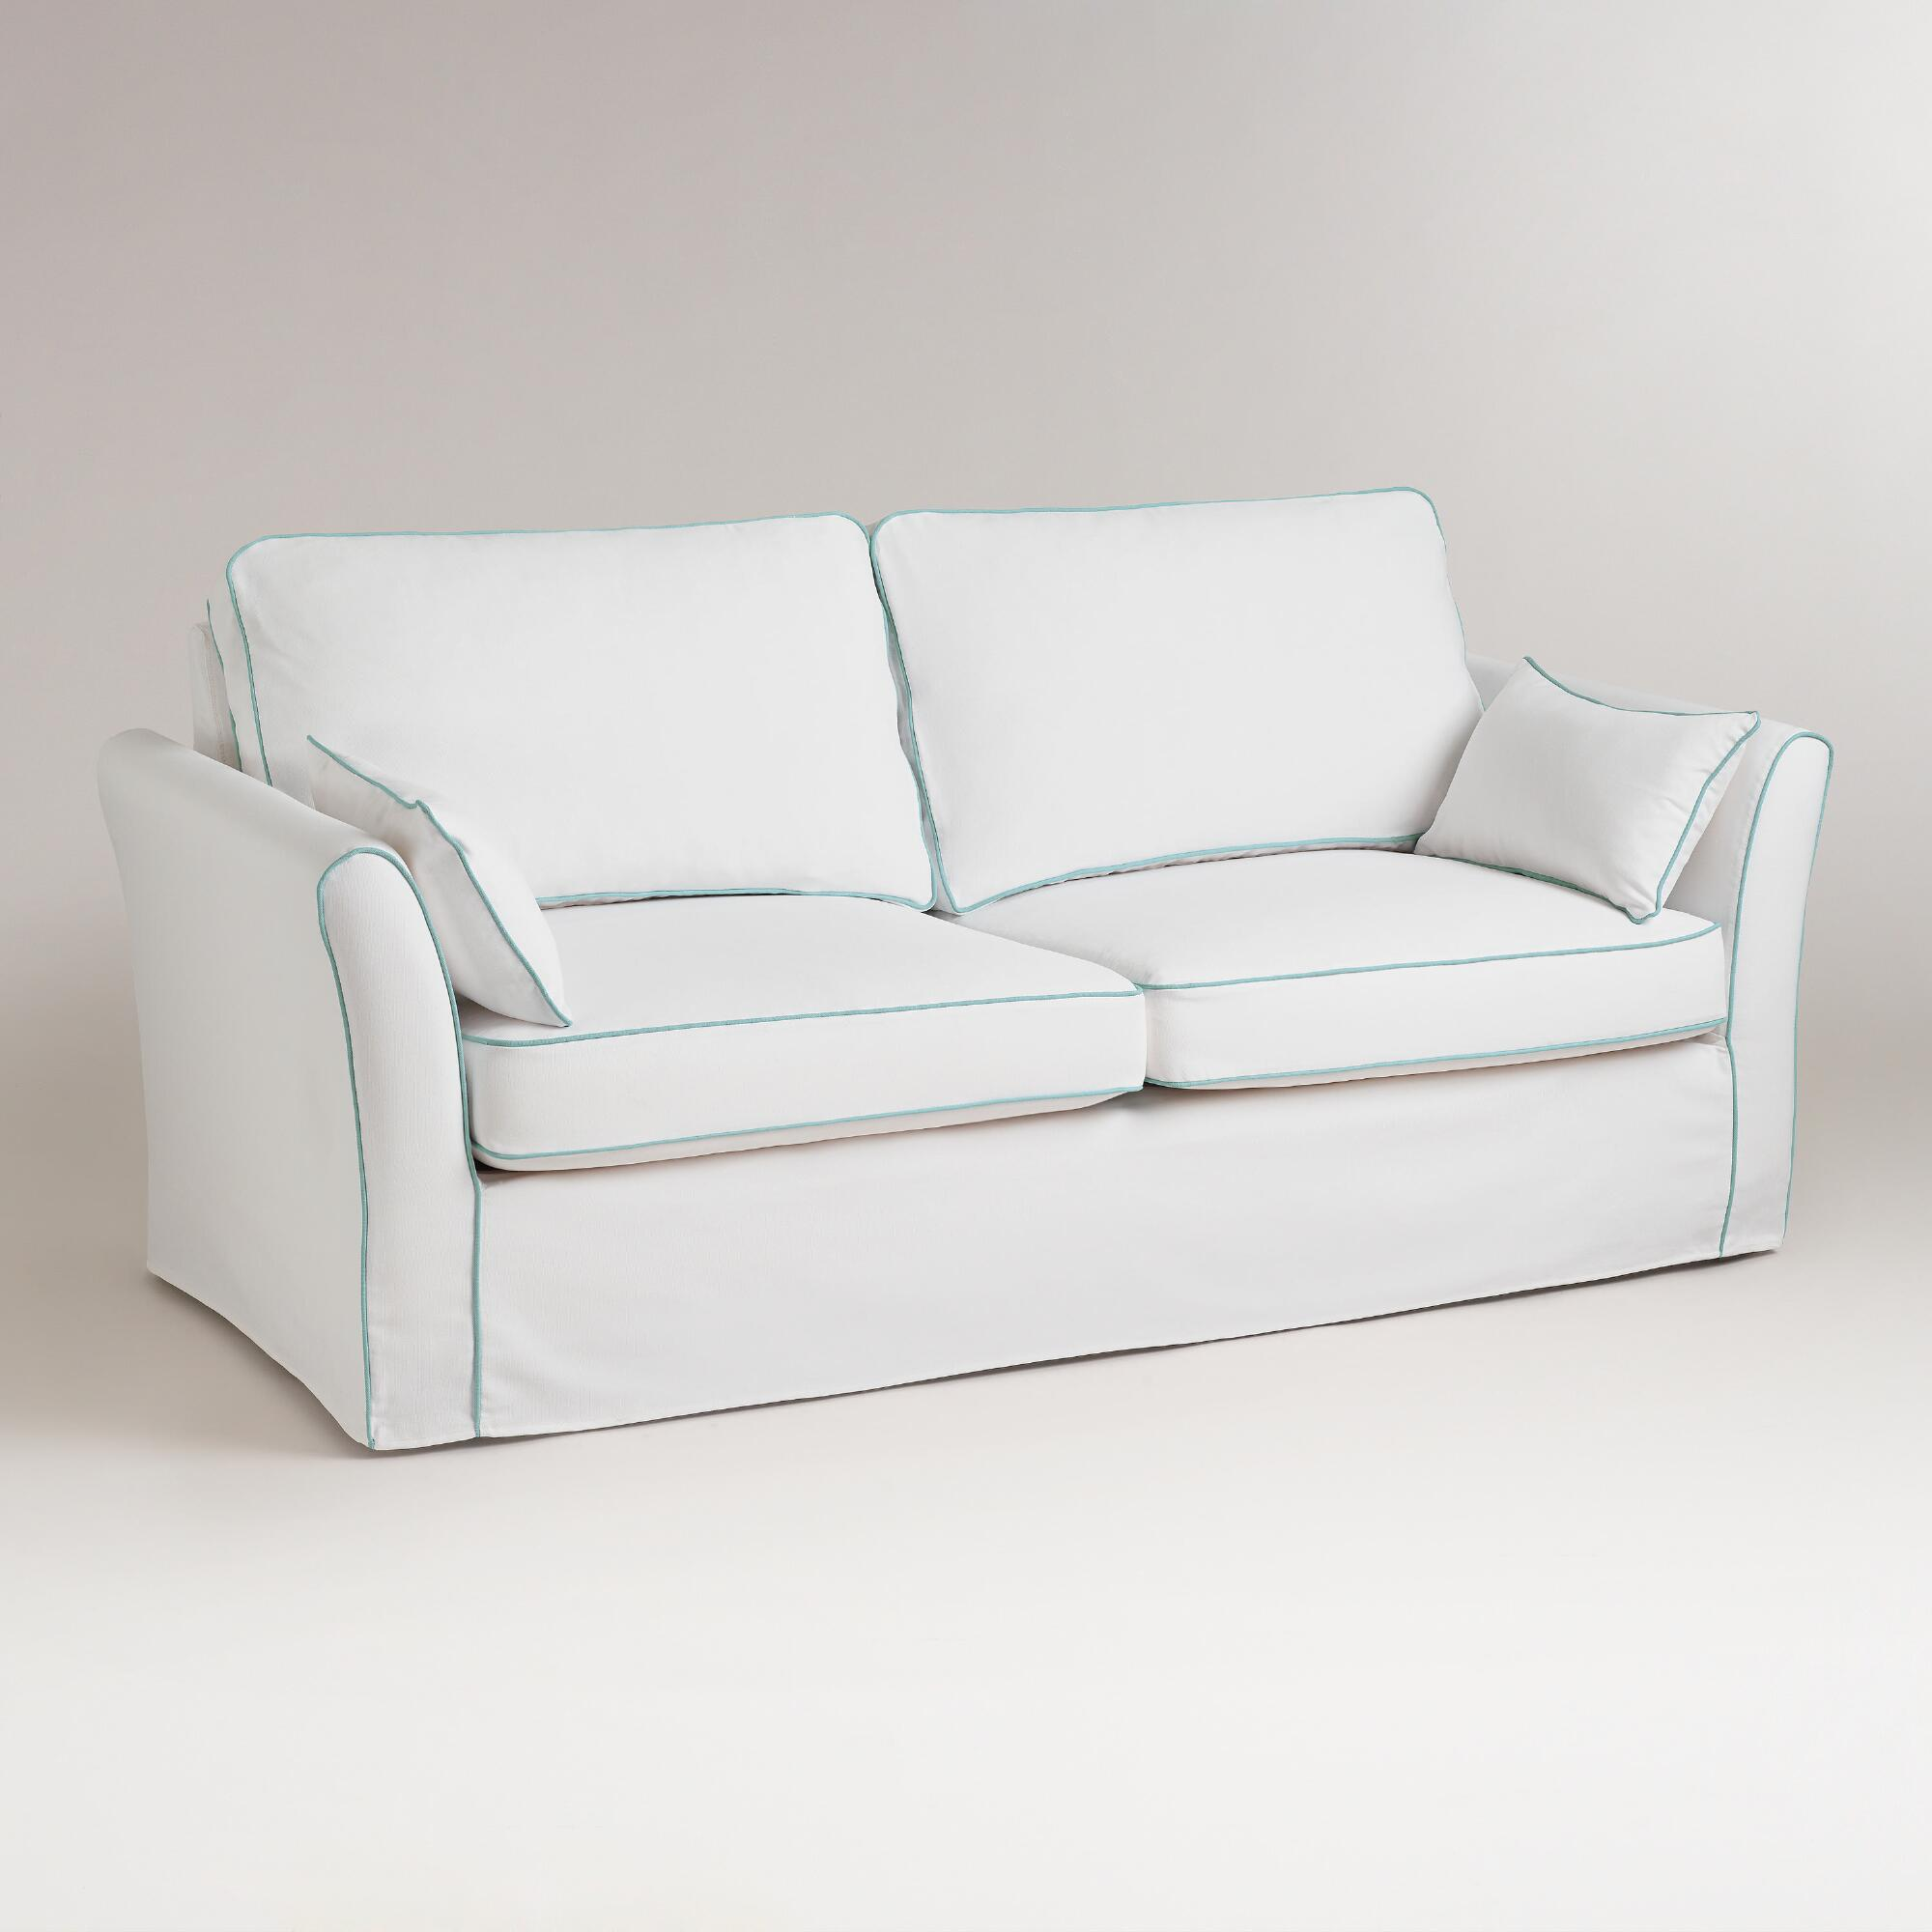 White and blue luxe sofa slipcover world market Blue loveseat slipcover